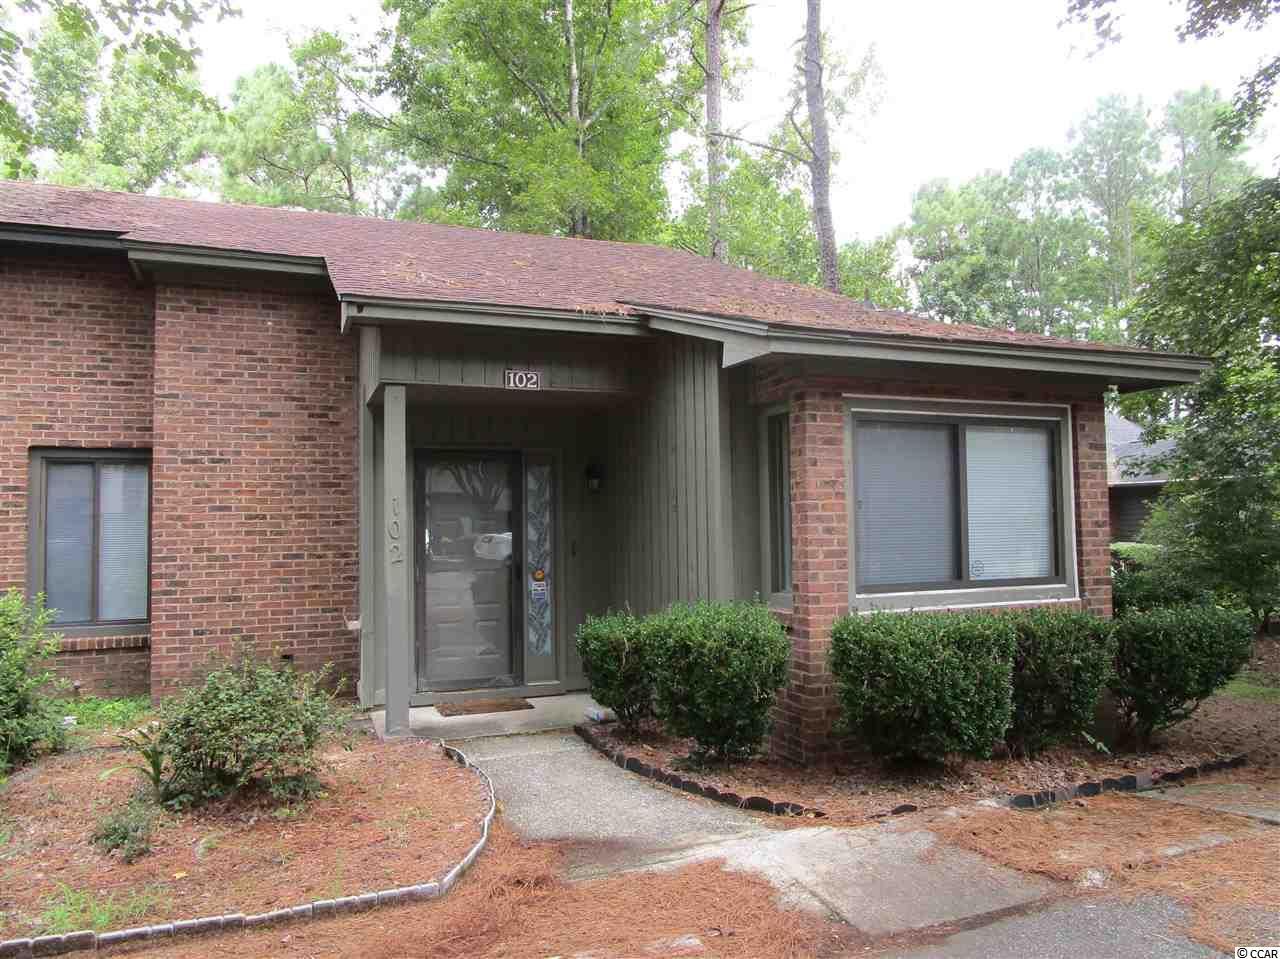 Myrtle Trace 2BR/2BA 1/2 Duplex in 55+ Community. This unique property has Carolina Room, cement patio, Kitchen appliances (new in 2017), laminate floors in major rooms. This is a very active community that offers: clubhouse & outdoor pool. Hospital 1 mile away, fine dining, shows, shopping, golf & most anything else you want or need!